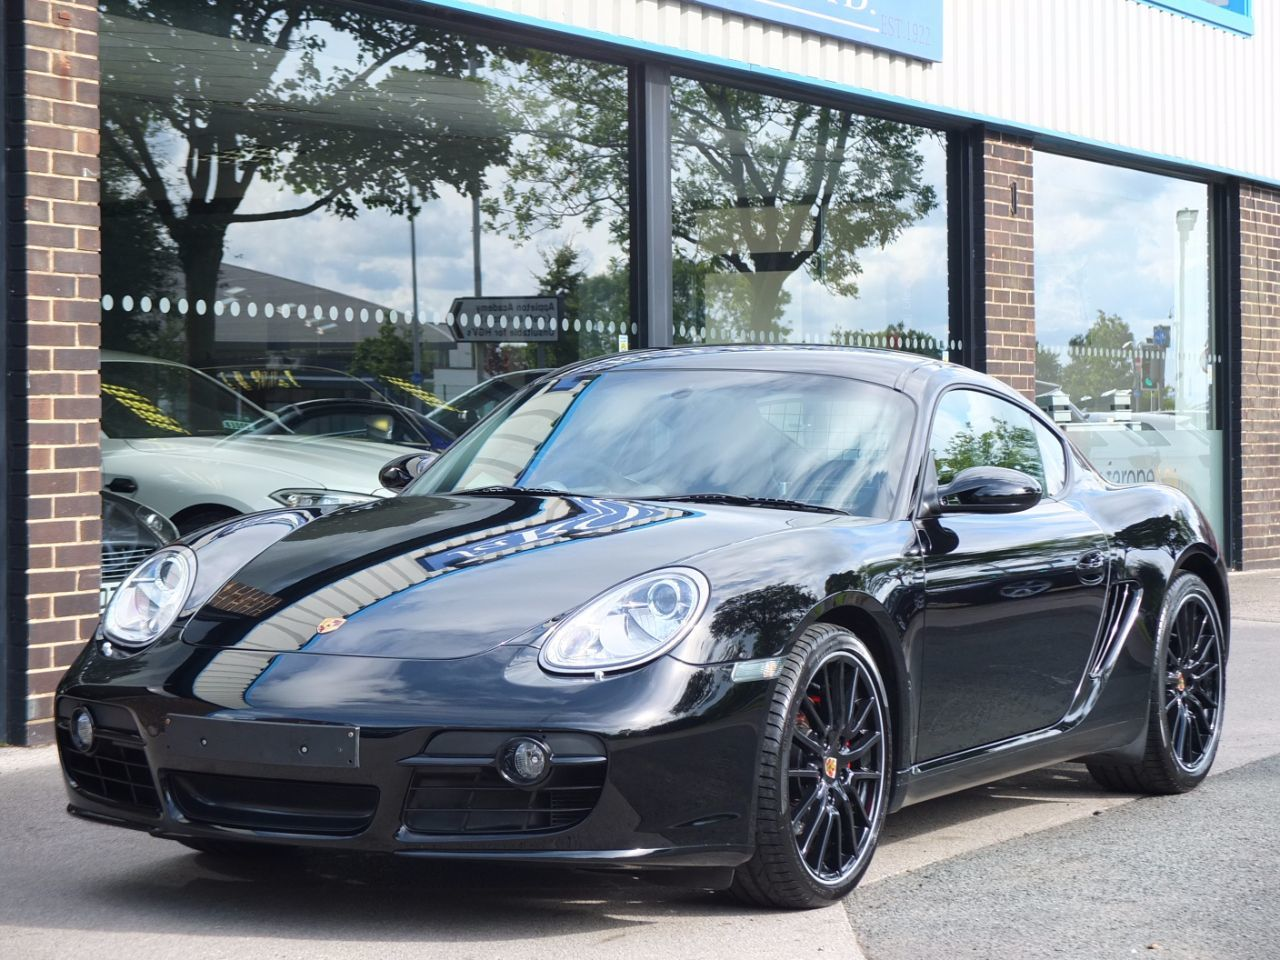 Porsche Cayman 3.4 S Sport No.38/700 Coupe Petrol Basalt Black MetallicPorsche Cayman 3.4 S Sport No.38/700 Coupe Petrol Basalt Black Metallic at fa Roper Ltd Bradford